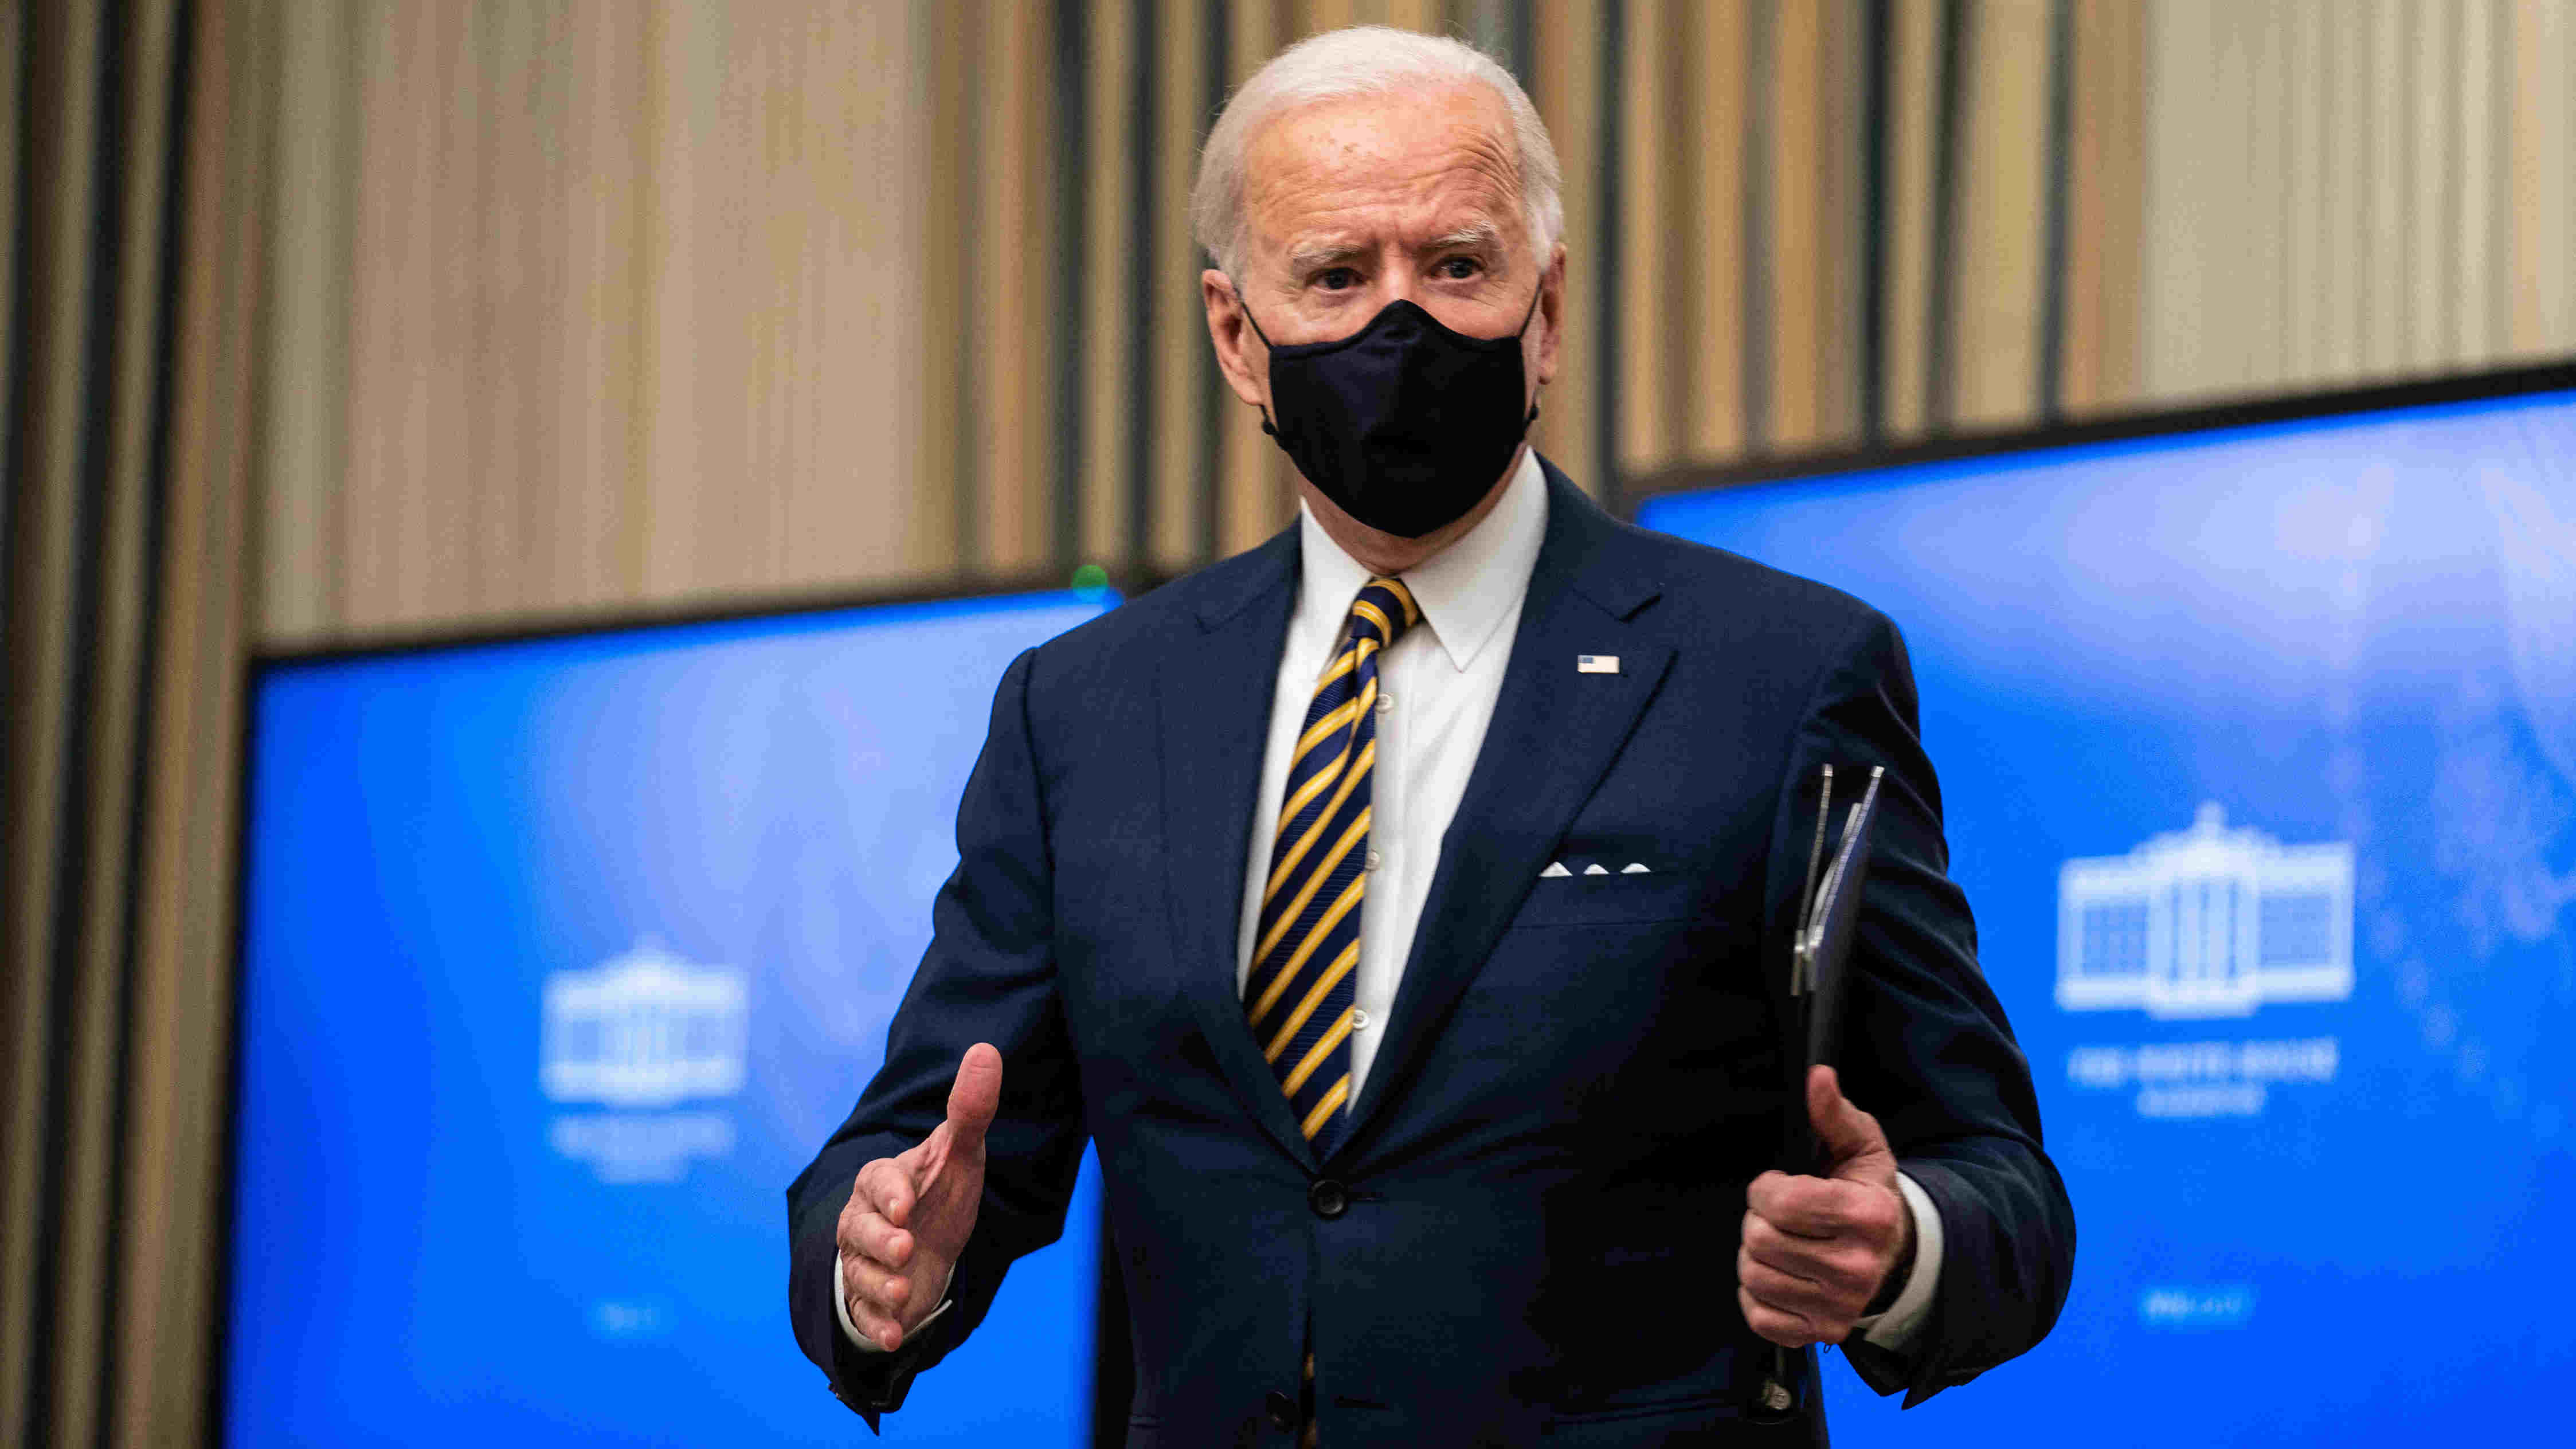 President Joe Biden responds to a reporter question after signing executive orders regarding his administration's response to the economic crisis, at the White House in Washington on Friday, Jan. 22, 2021.